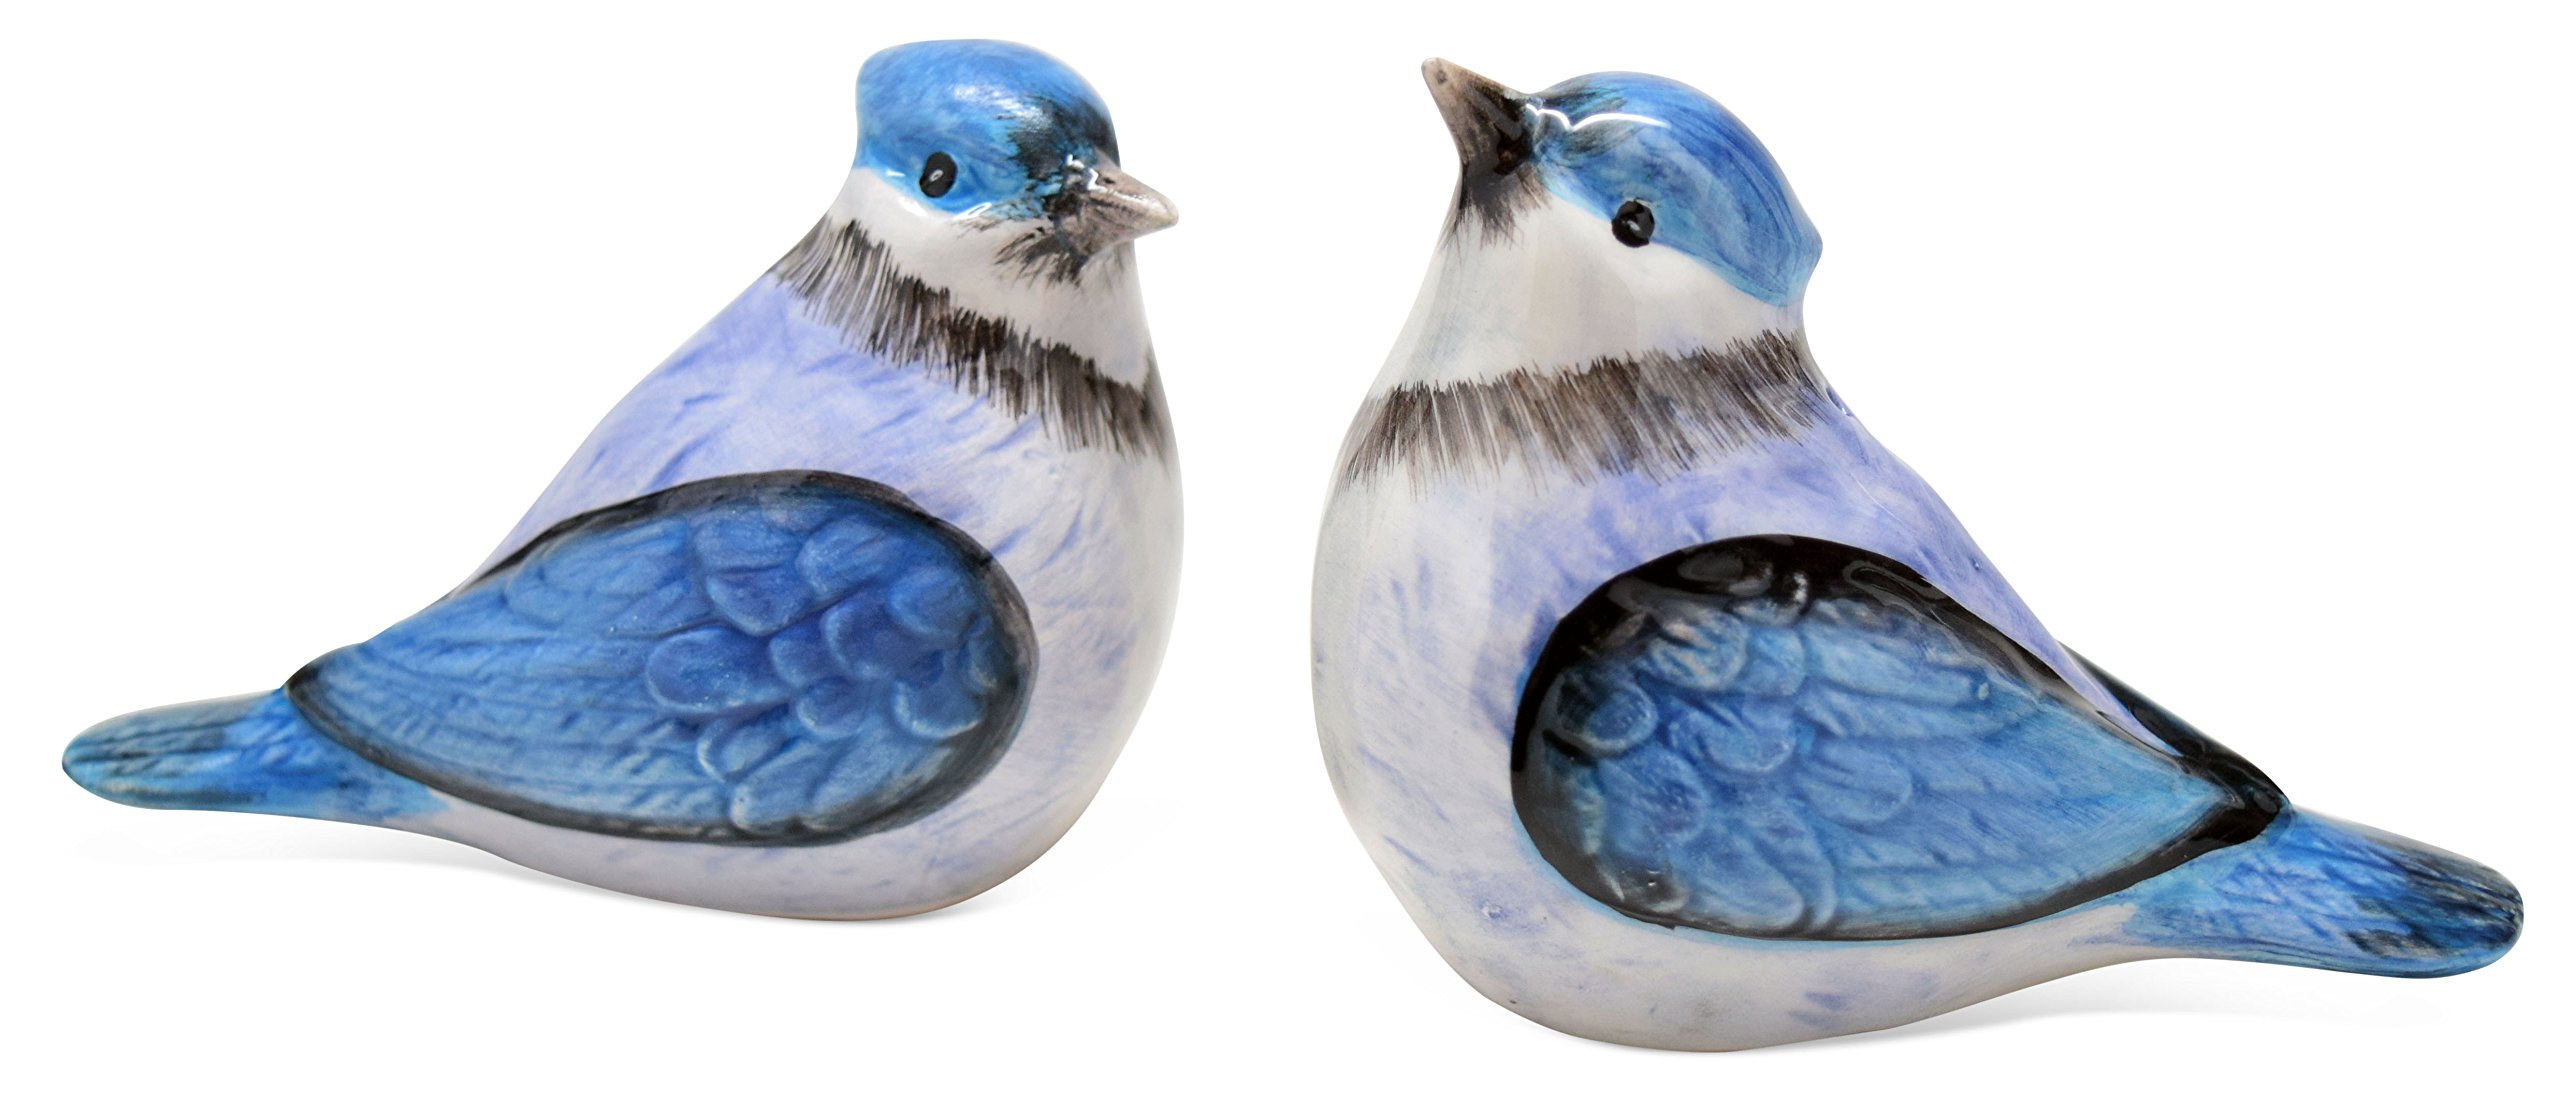 Dolomite Blue Bird Everyday Salt and Pepper Shaker Set of 2 by TII